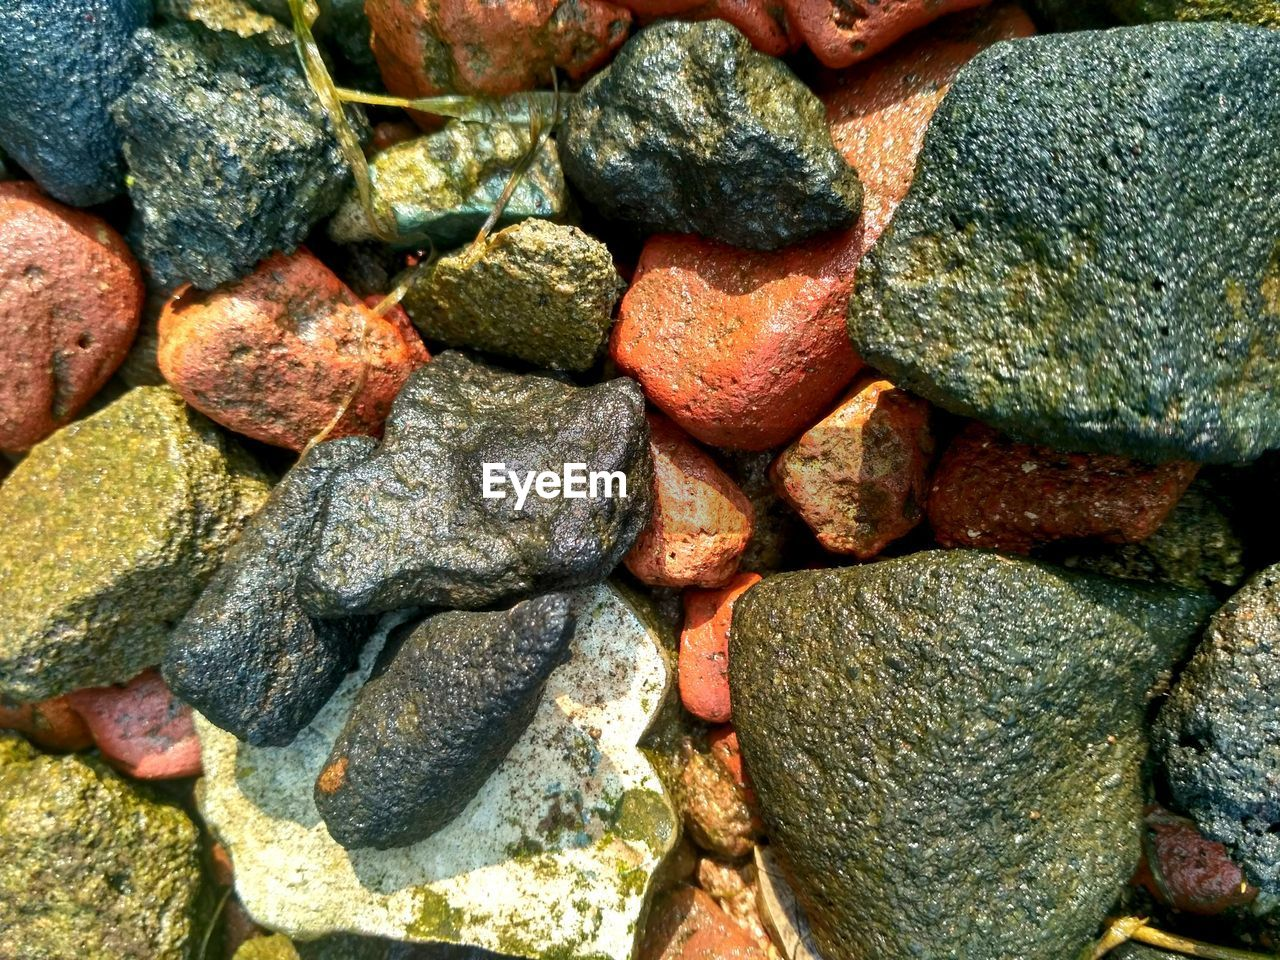 full frame, backgrounds, no people, rock - object, textured, close-up, large group of objects, day, outdoors, nature, pebble beach